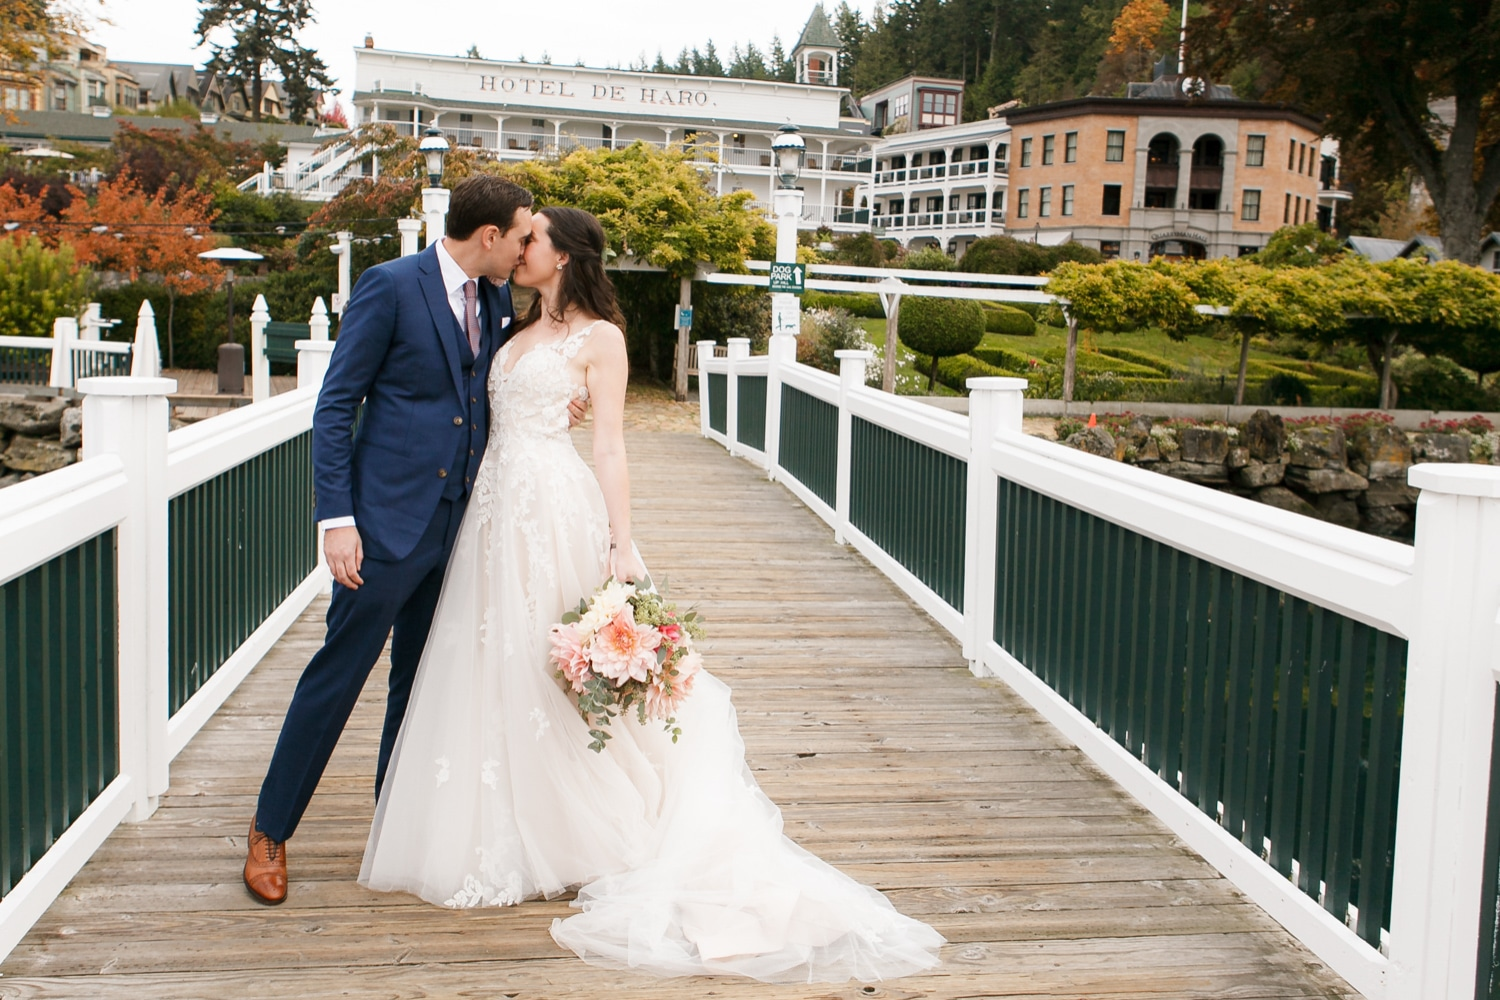 roche harbor resort wedding photo local wedding photographer